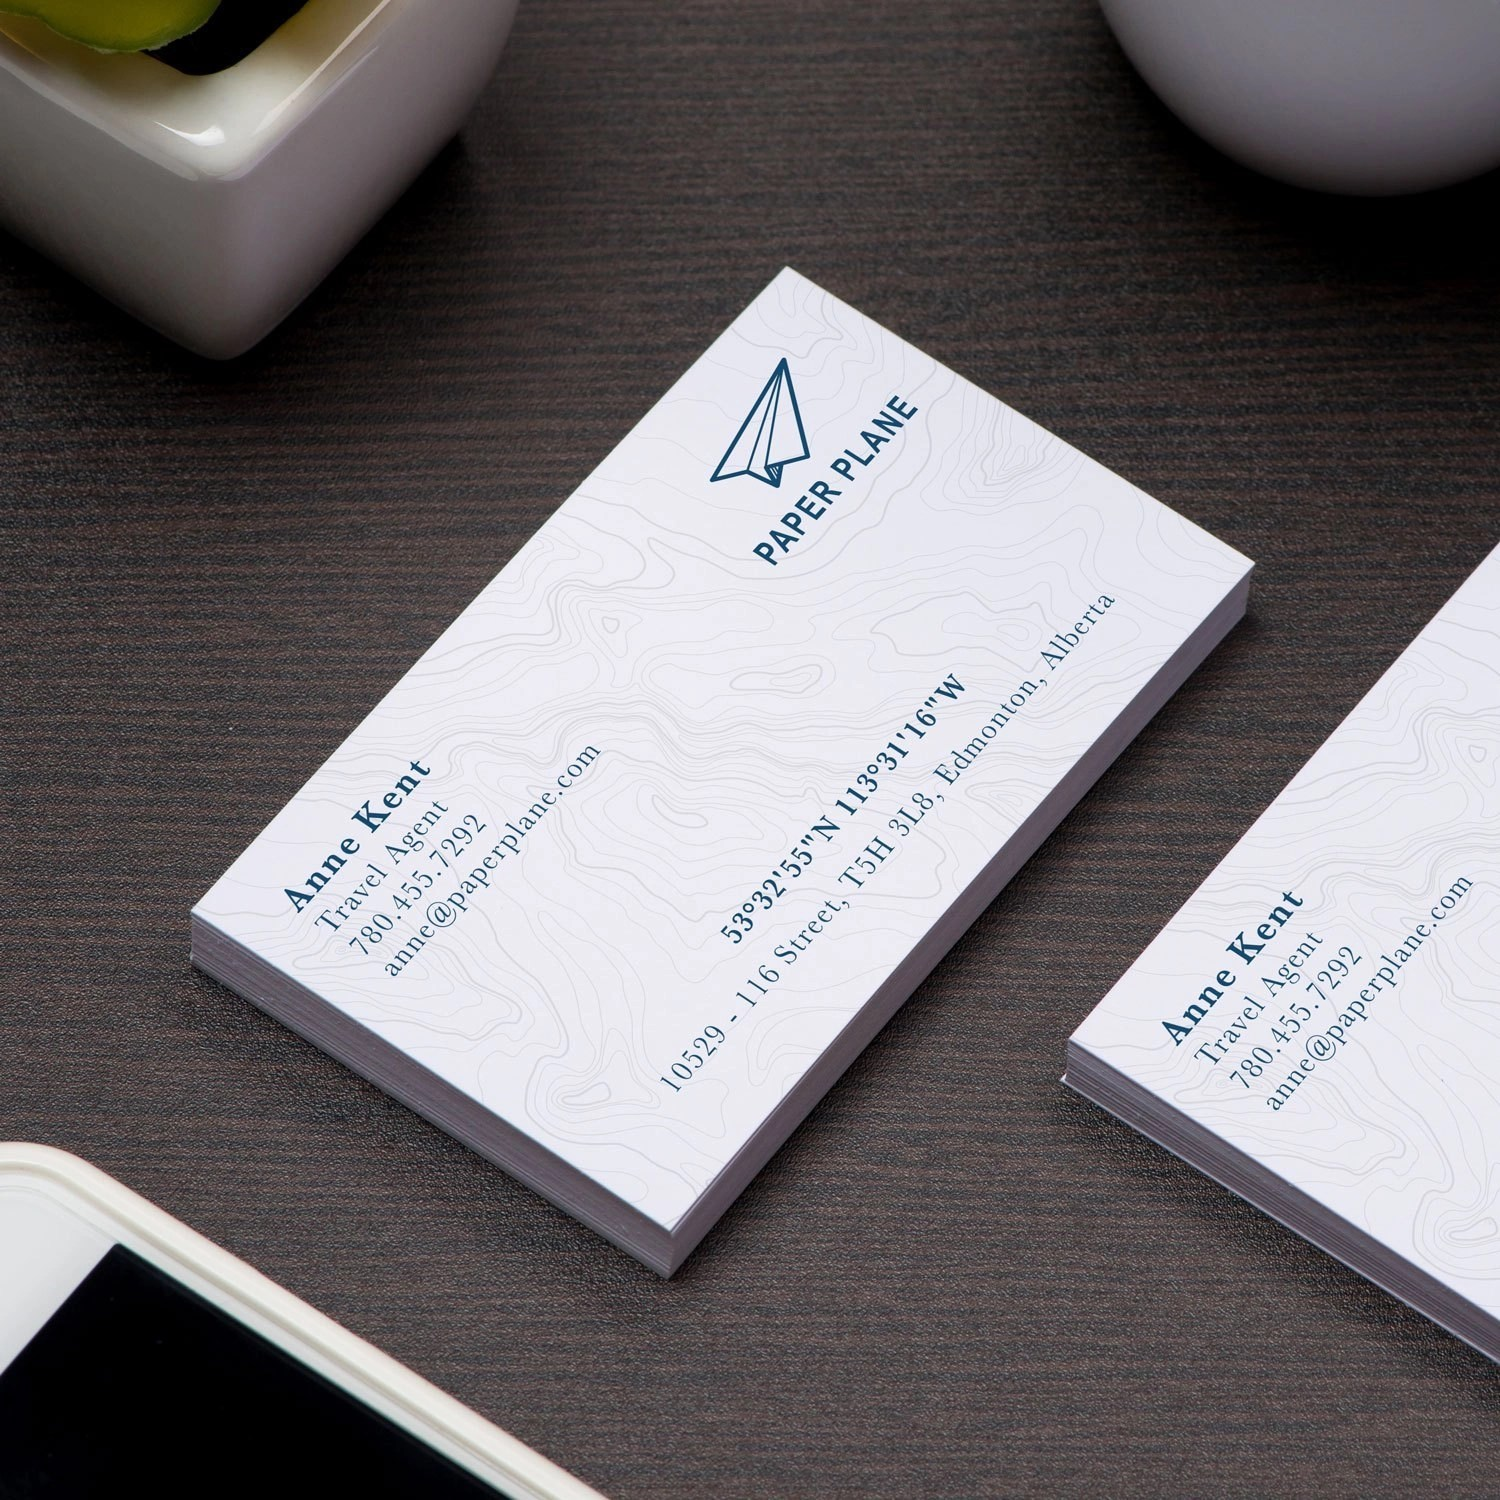 Silk Laminate Business Cards printed in Saskatoon